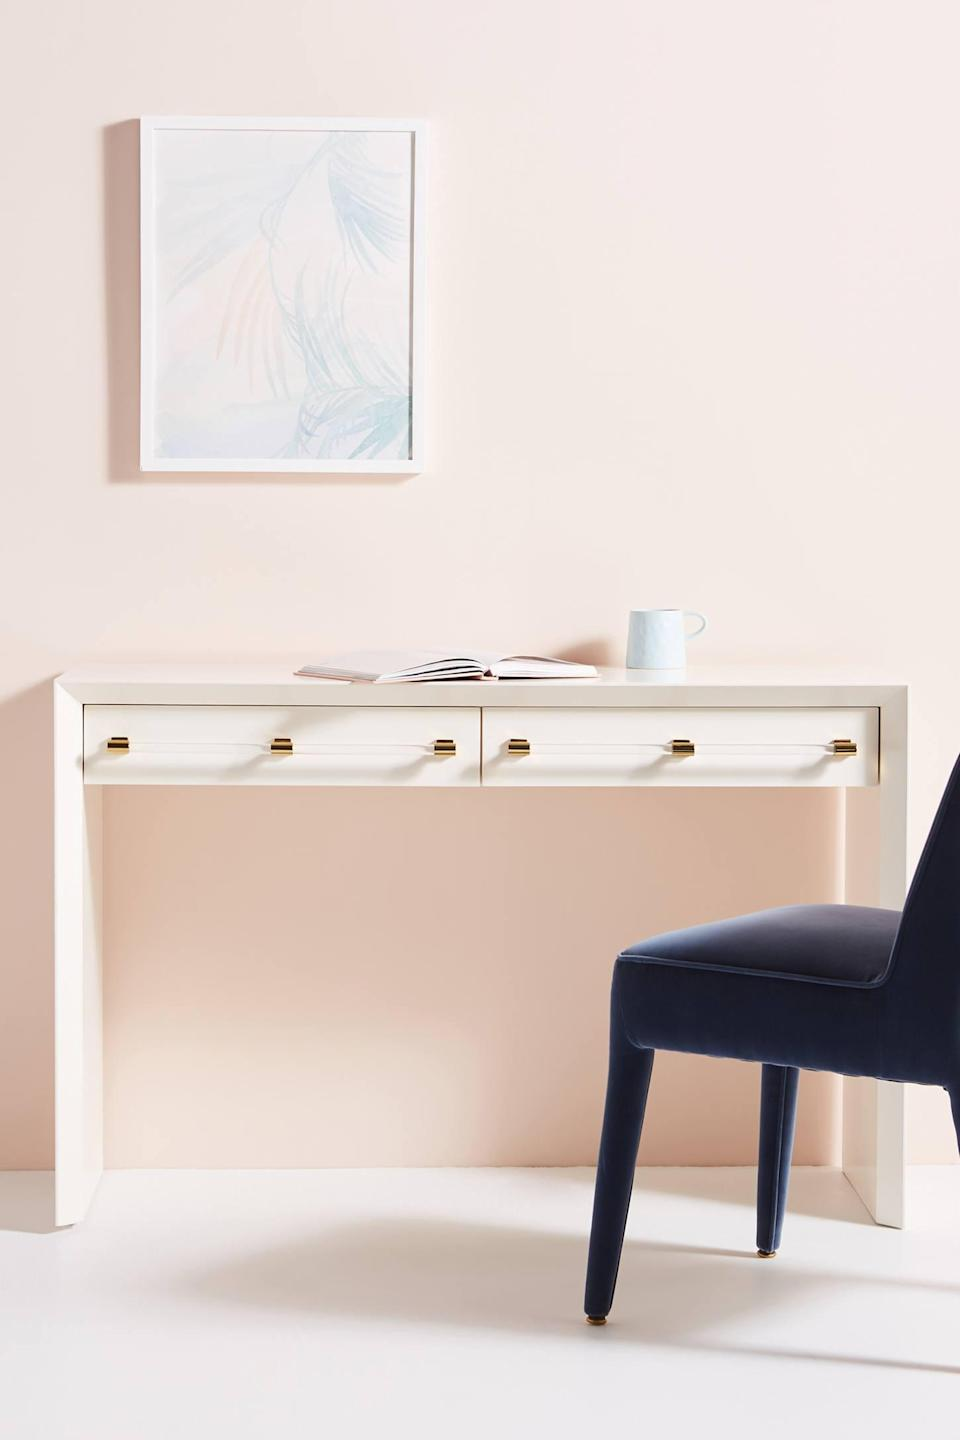 "<h3>Anthropologie Merriton Desk</h3><br>It doesn't get much sleeker than this chamfered-edge wooden desk with an unencumbered frame, streamlined storage drawers, and gleaming brass accents.<br><br><strong>Anthropologie</strong> Merriton Desk, $, available at <a href=""https://go.skimresources.com/?id=30283X879131&url=https%3A%2F%2Fwww.anthropologie.com%2Fshop%2Fmerriton-desk"" rel=""nofollow noopener"" target=""_blank"" data-ylk=""slk:Anthropologie"" class=""link rapid-noclick-resp"">Anthropologie</a>"